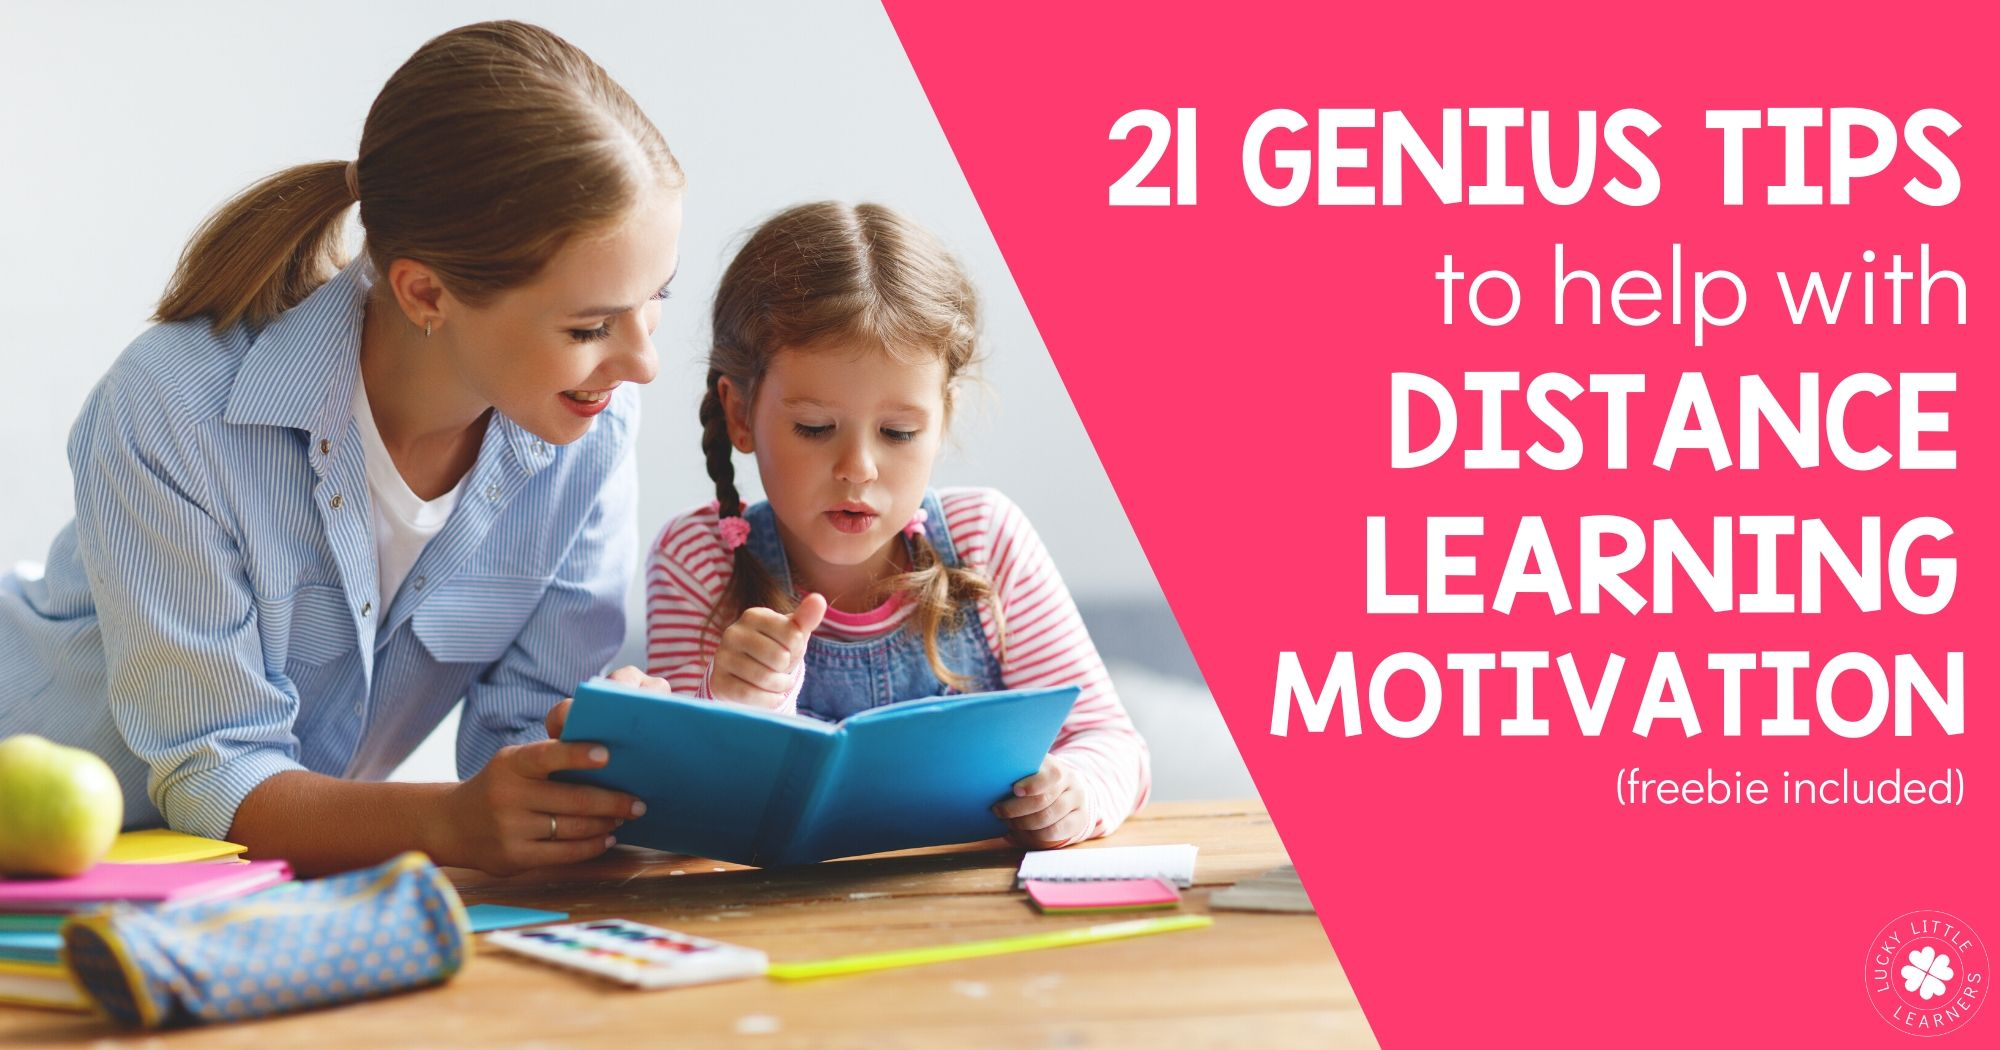 21 Genius Tips for Distance Learning Motivation